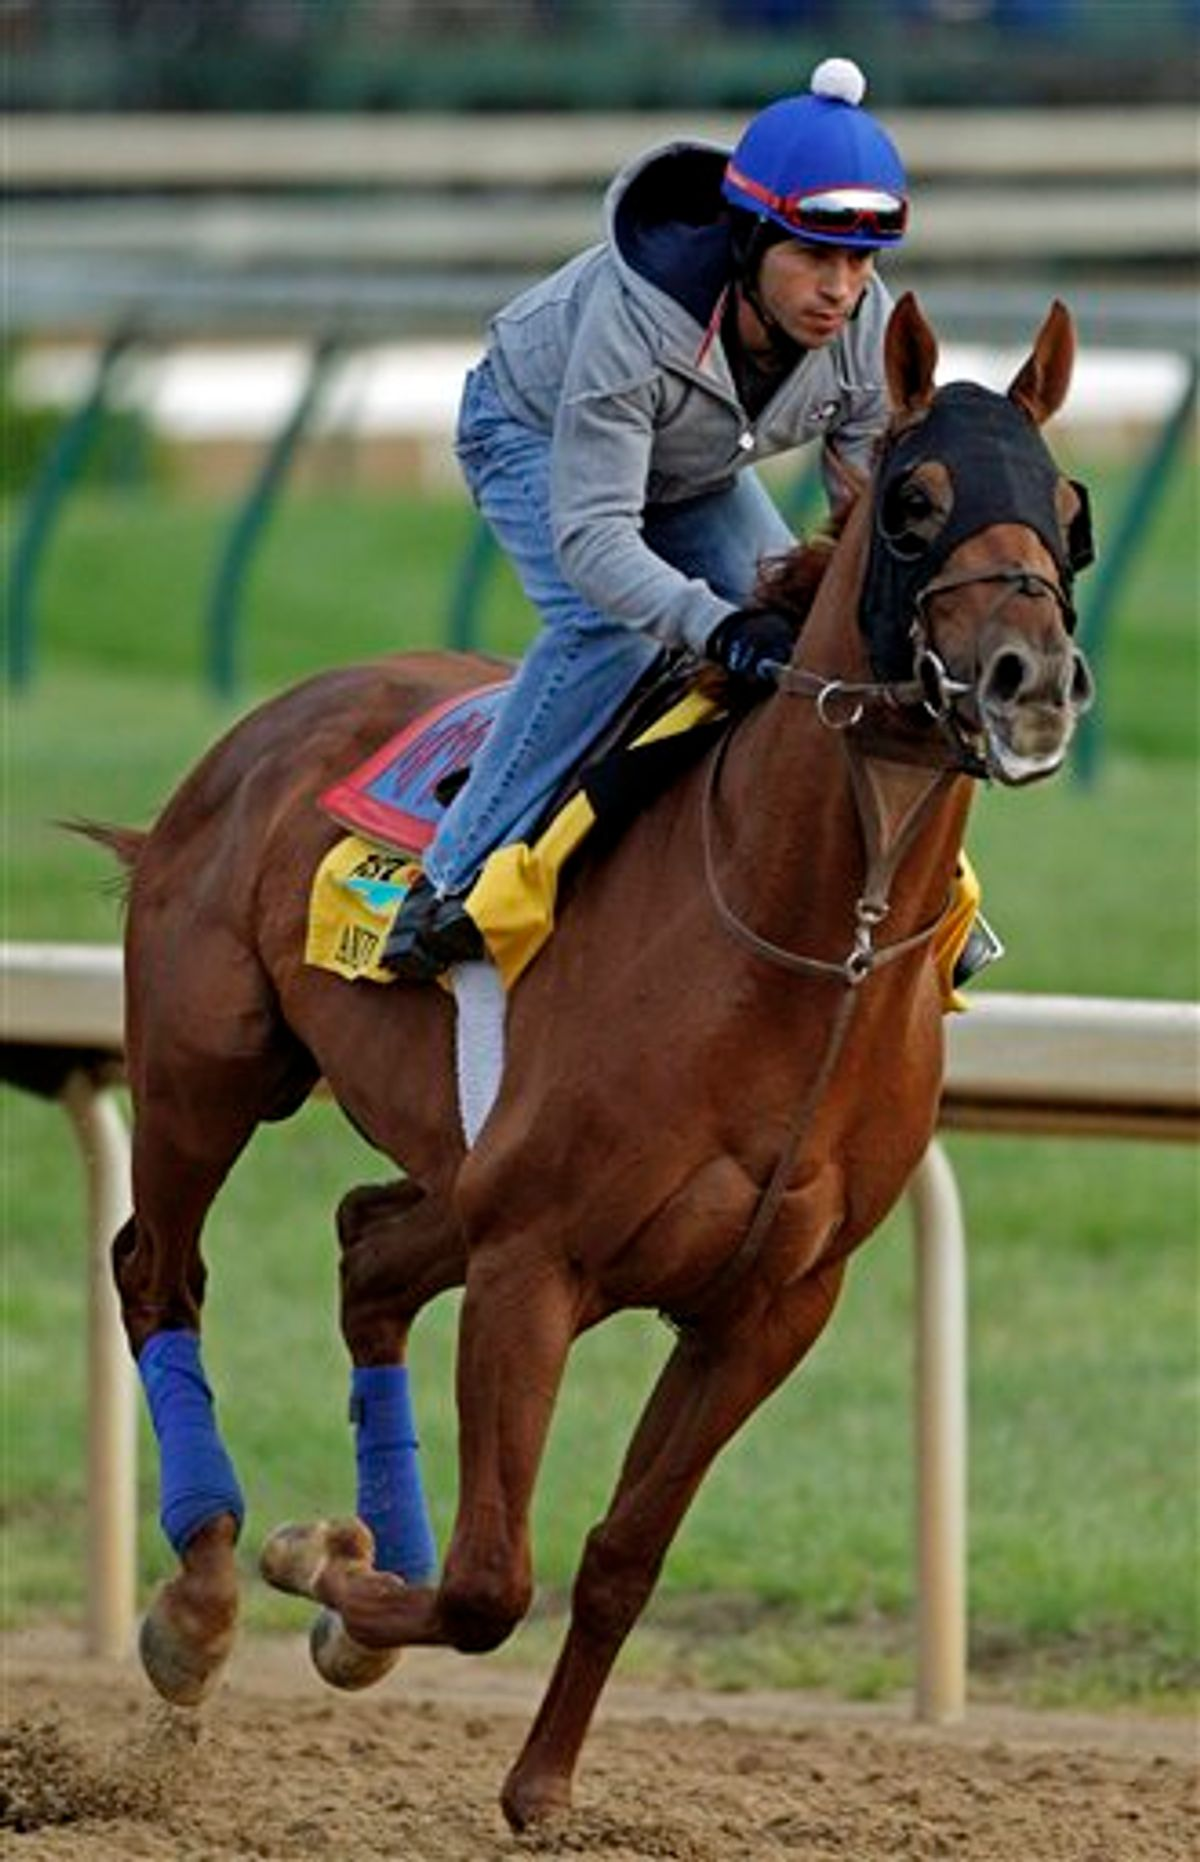 Exercise rider James Slater takes Kentucky Derby entrant Animal Kingdom for a workout at Churchill Downs Friday, May 6, 2011, in Louisville, Ky. (AP Photo/Denis Paquin) (AP)